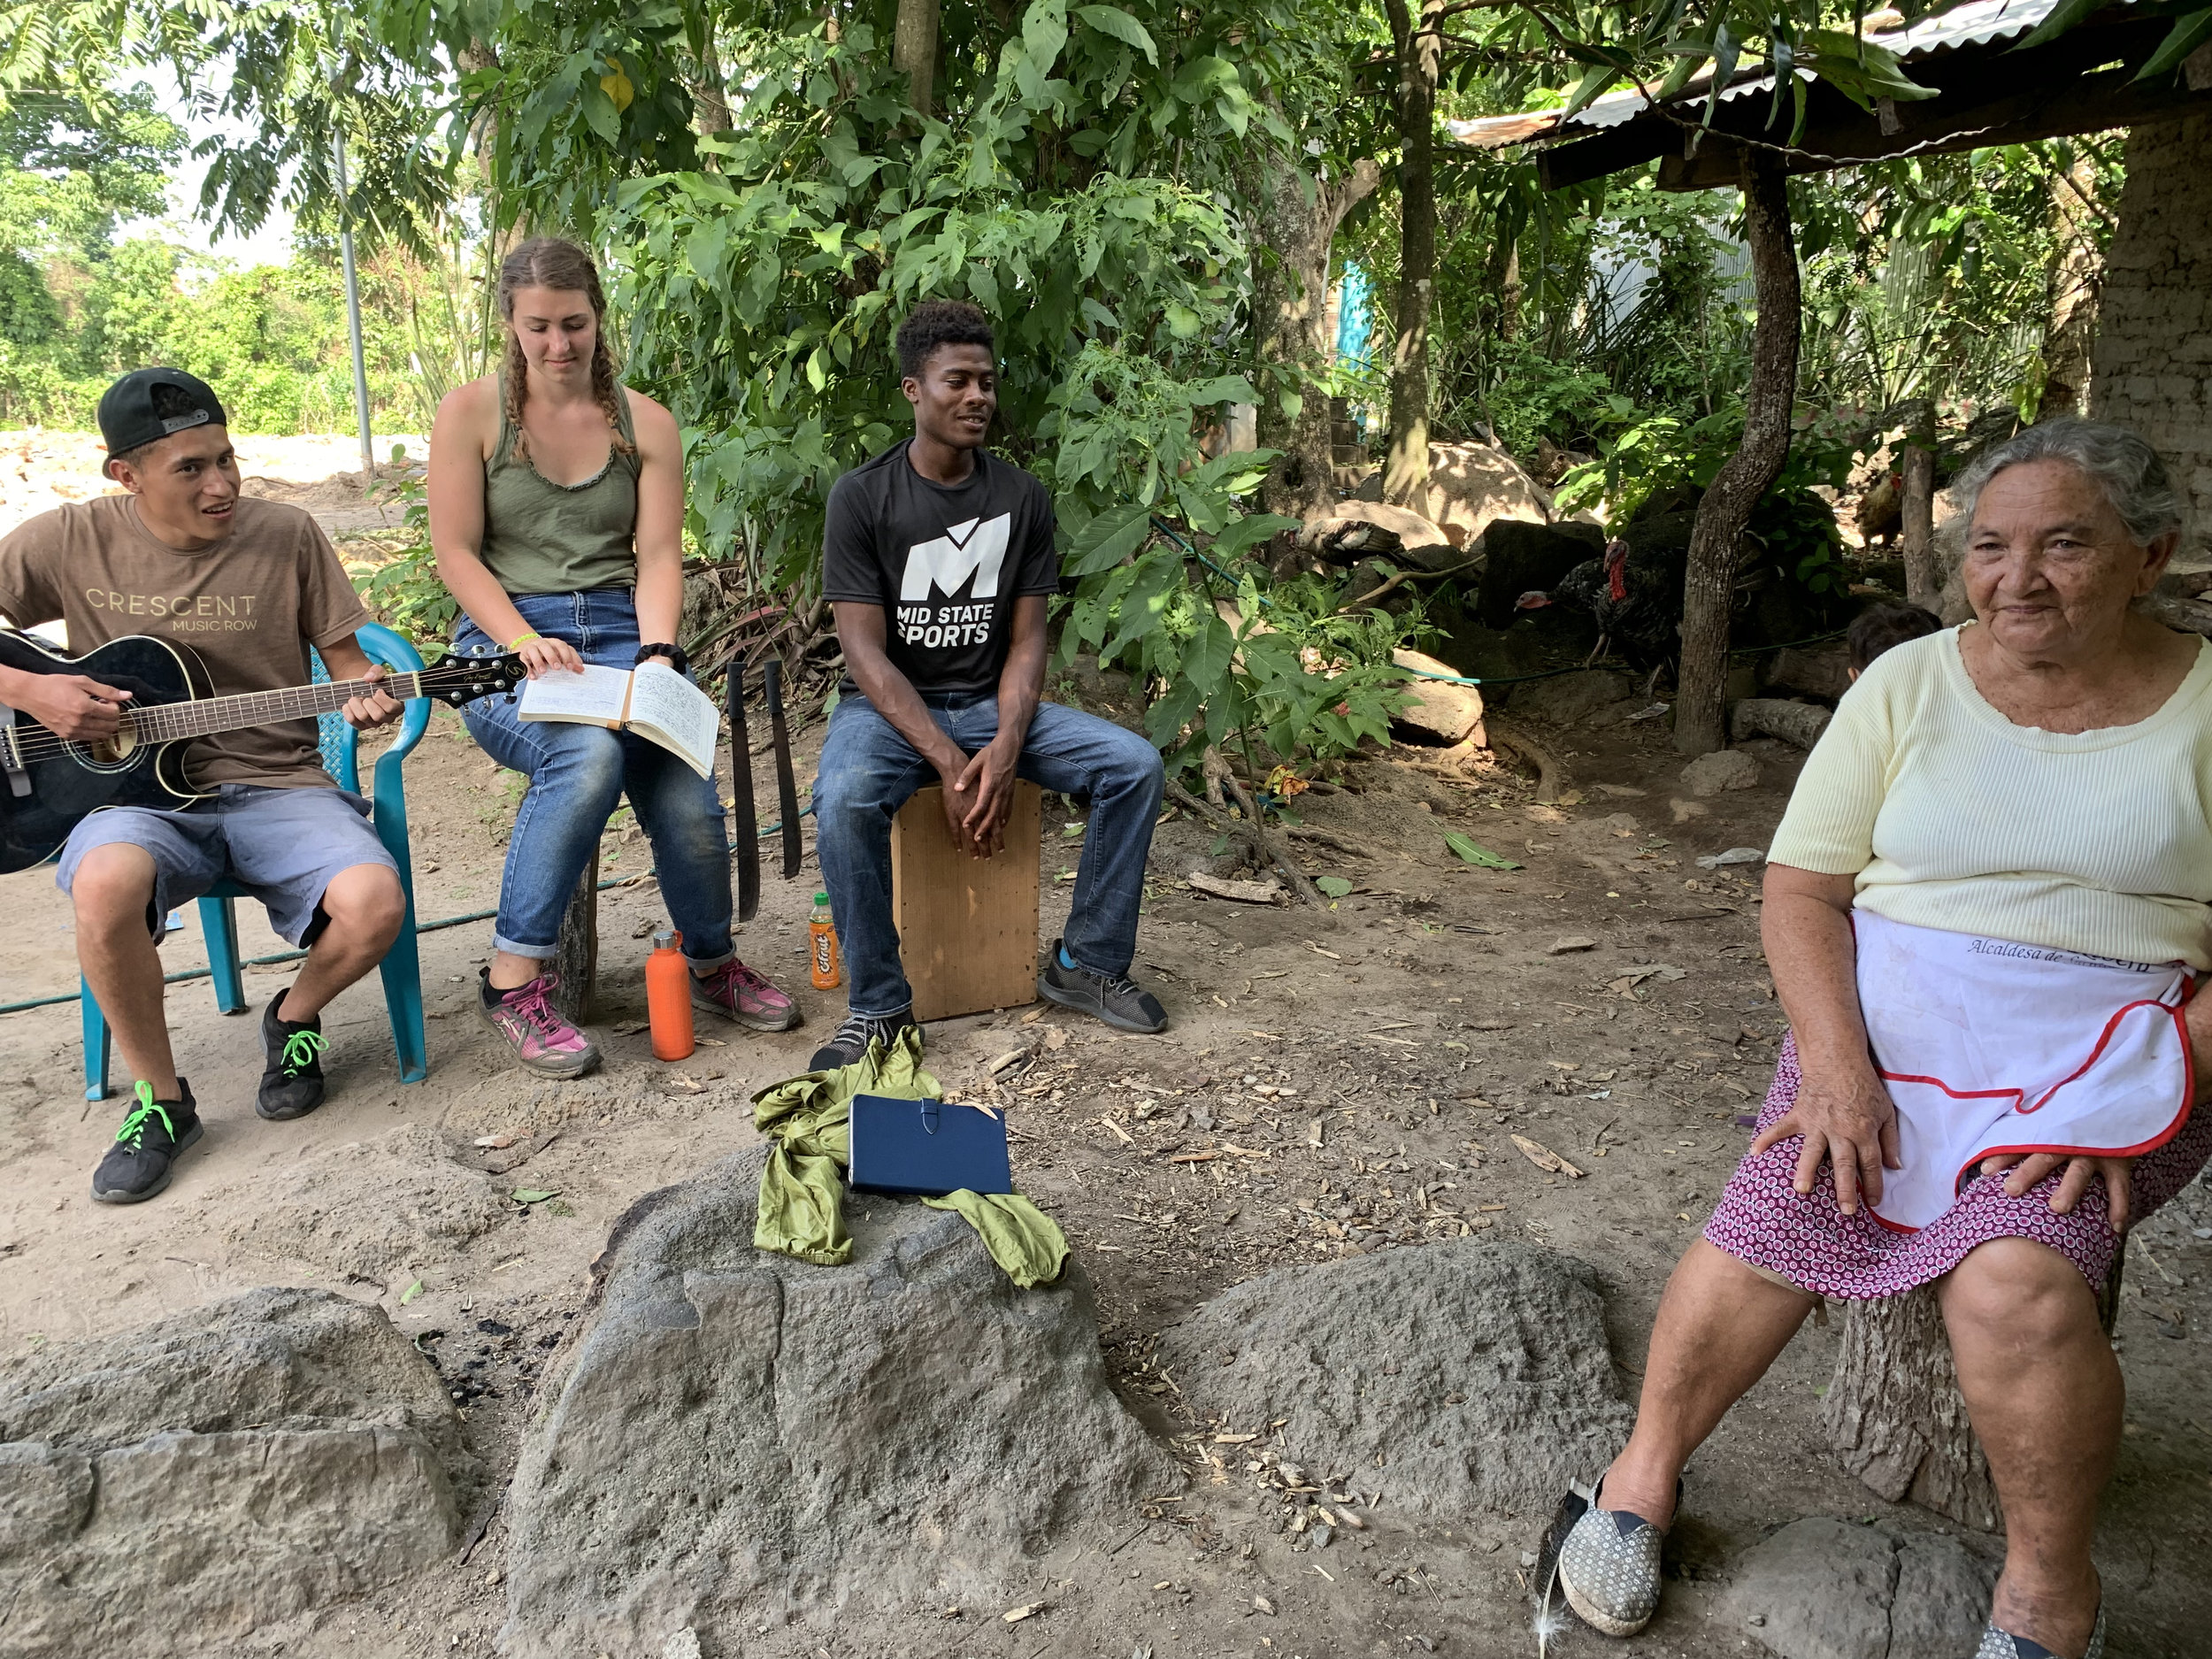 Alison and Gerron, members of Da Mission team, singing worship songs with Antonia at right.